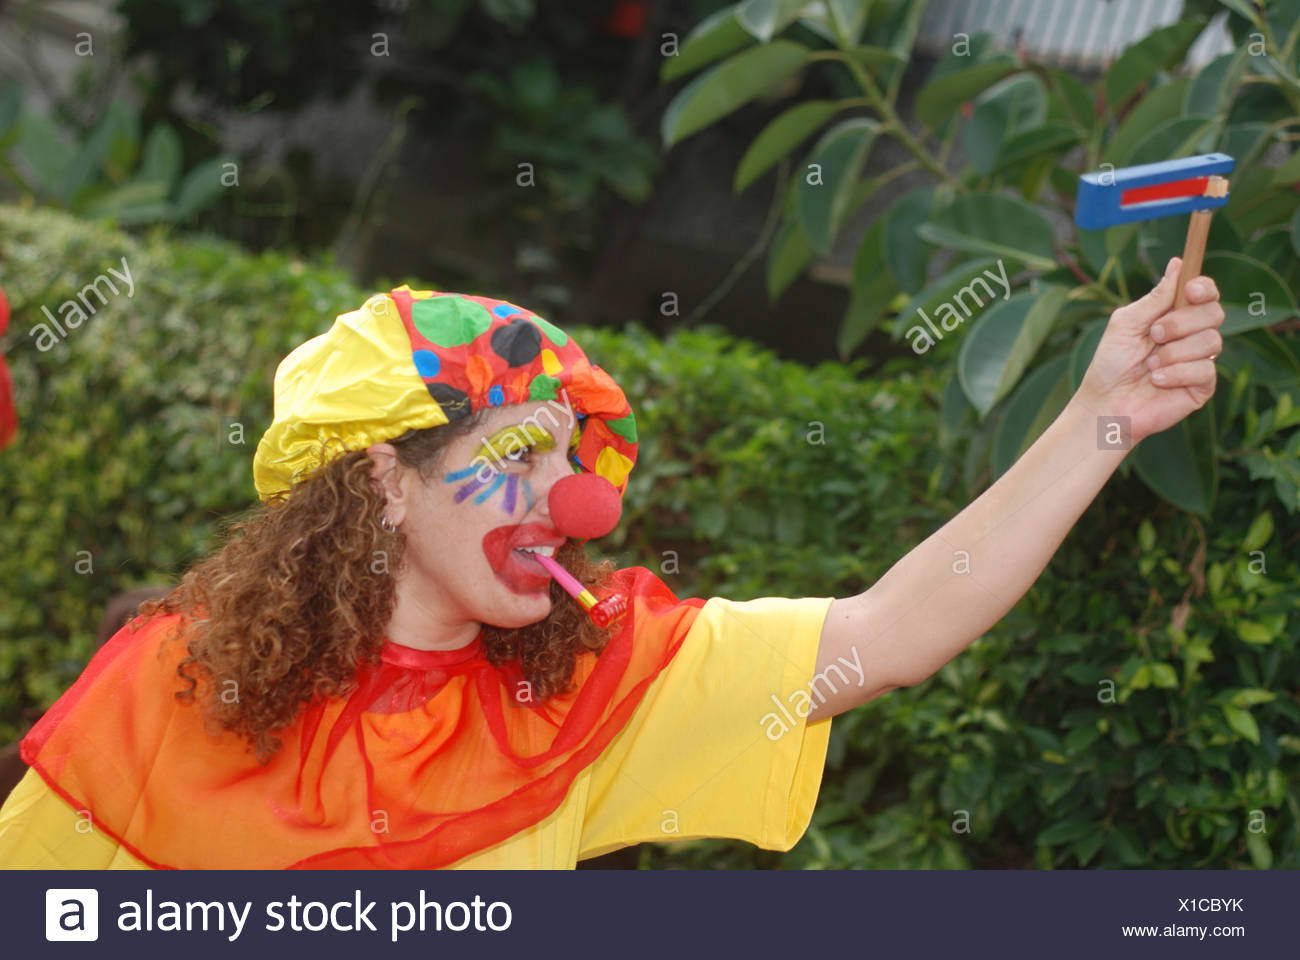 Israel Purim A young woman dressed up as a clown - Stock Image